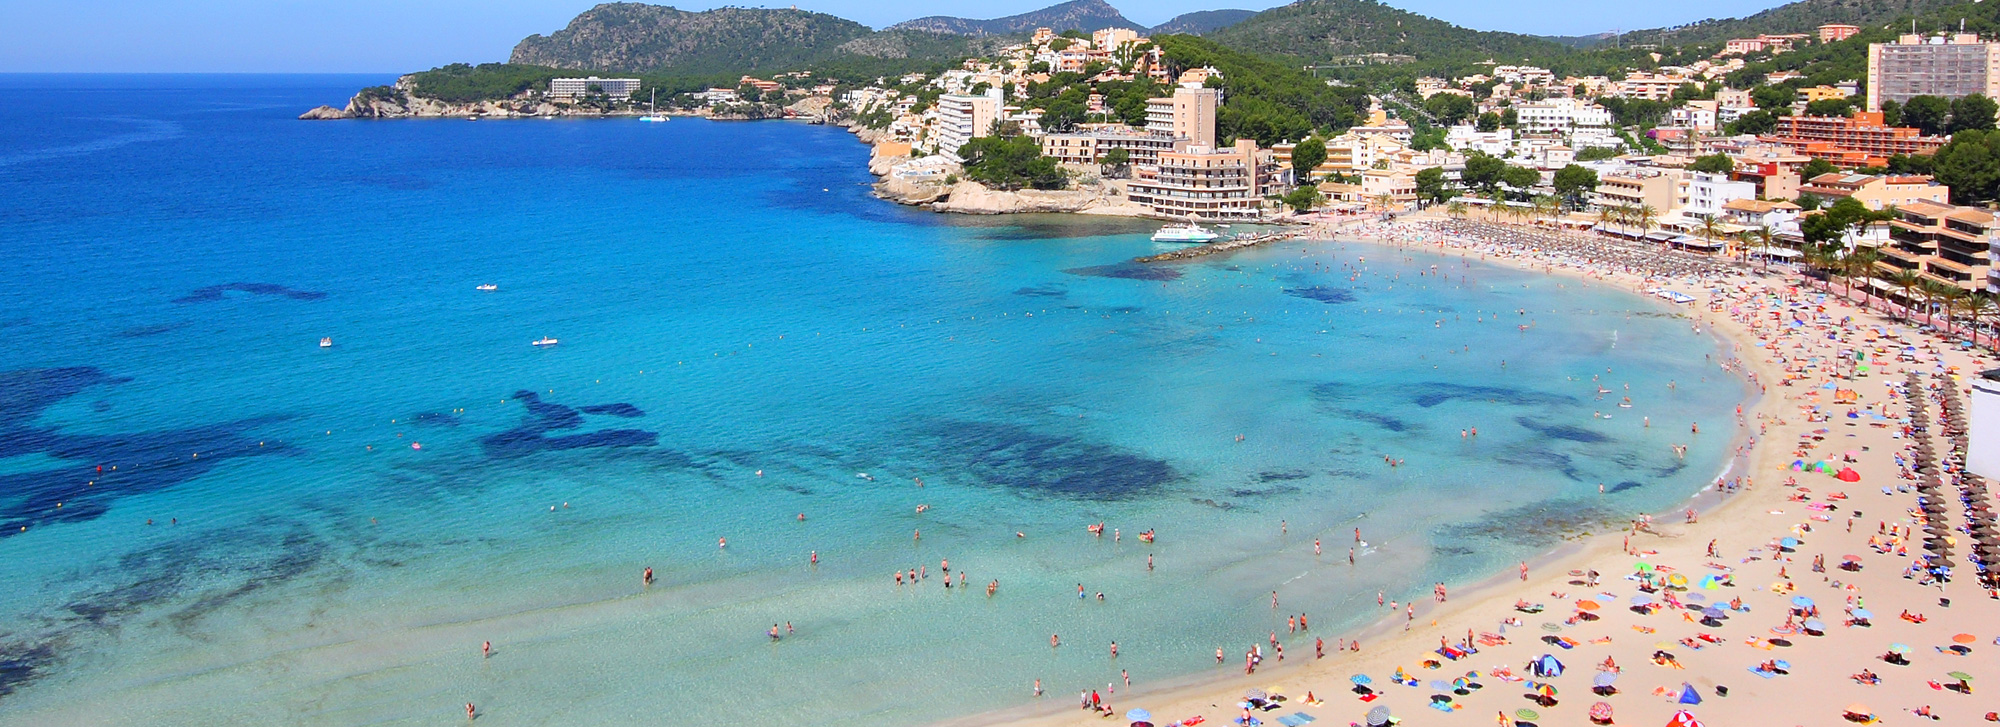 All Inclusive Hotels In Paguera Mallorca